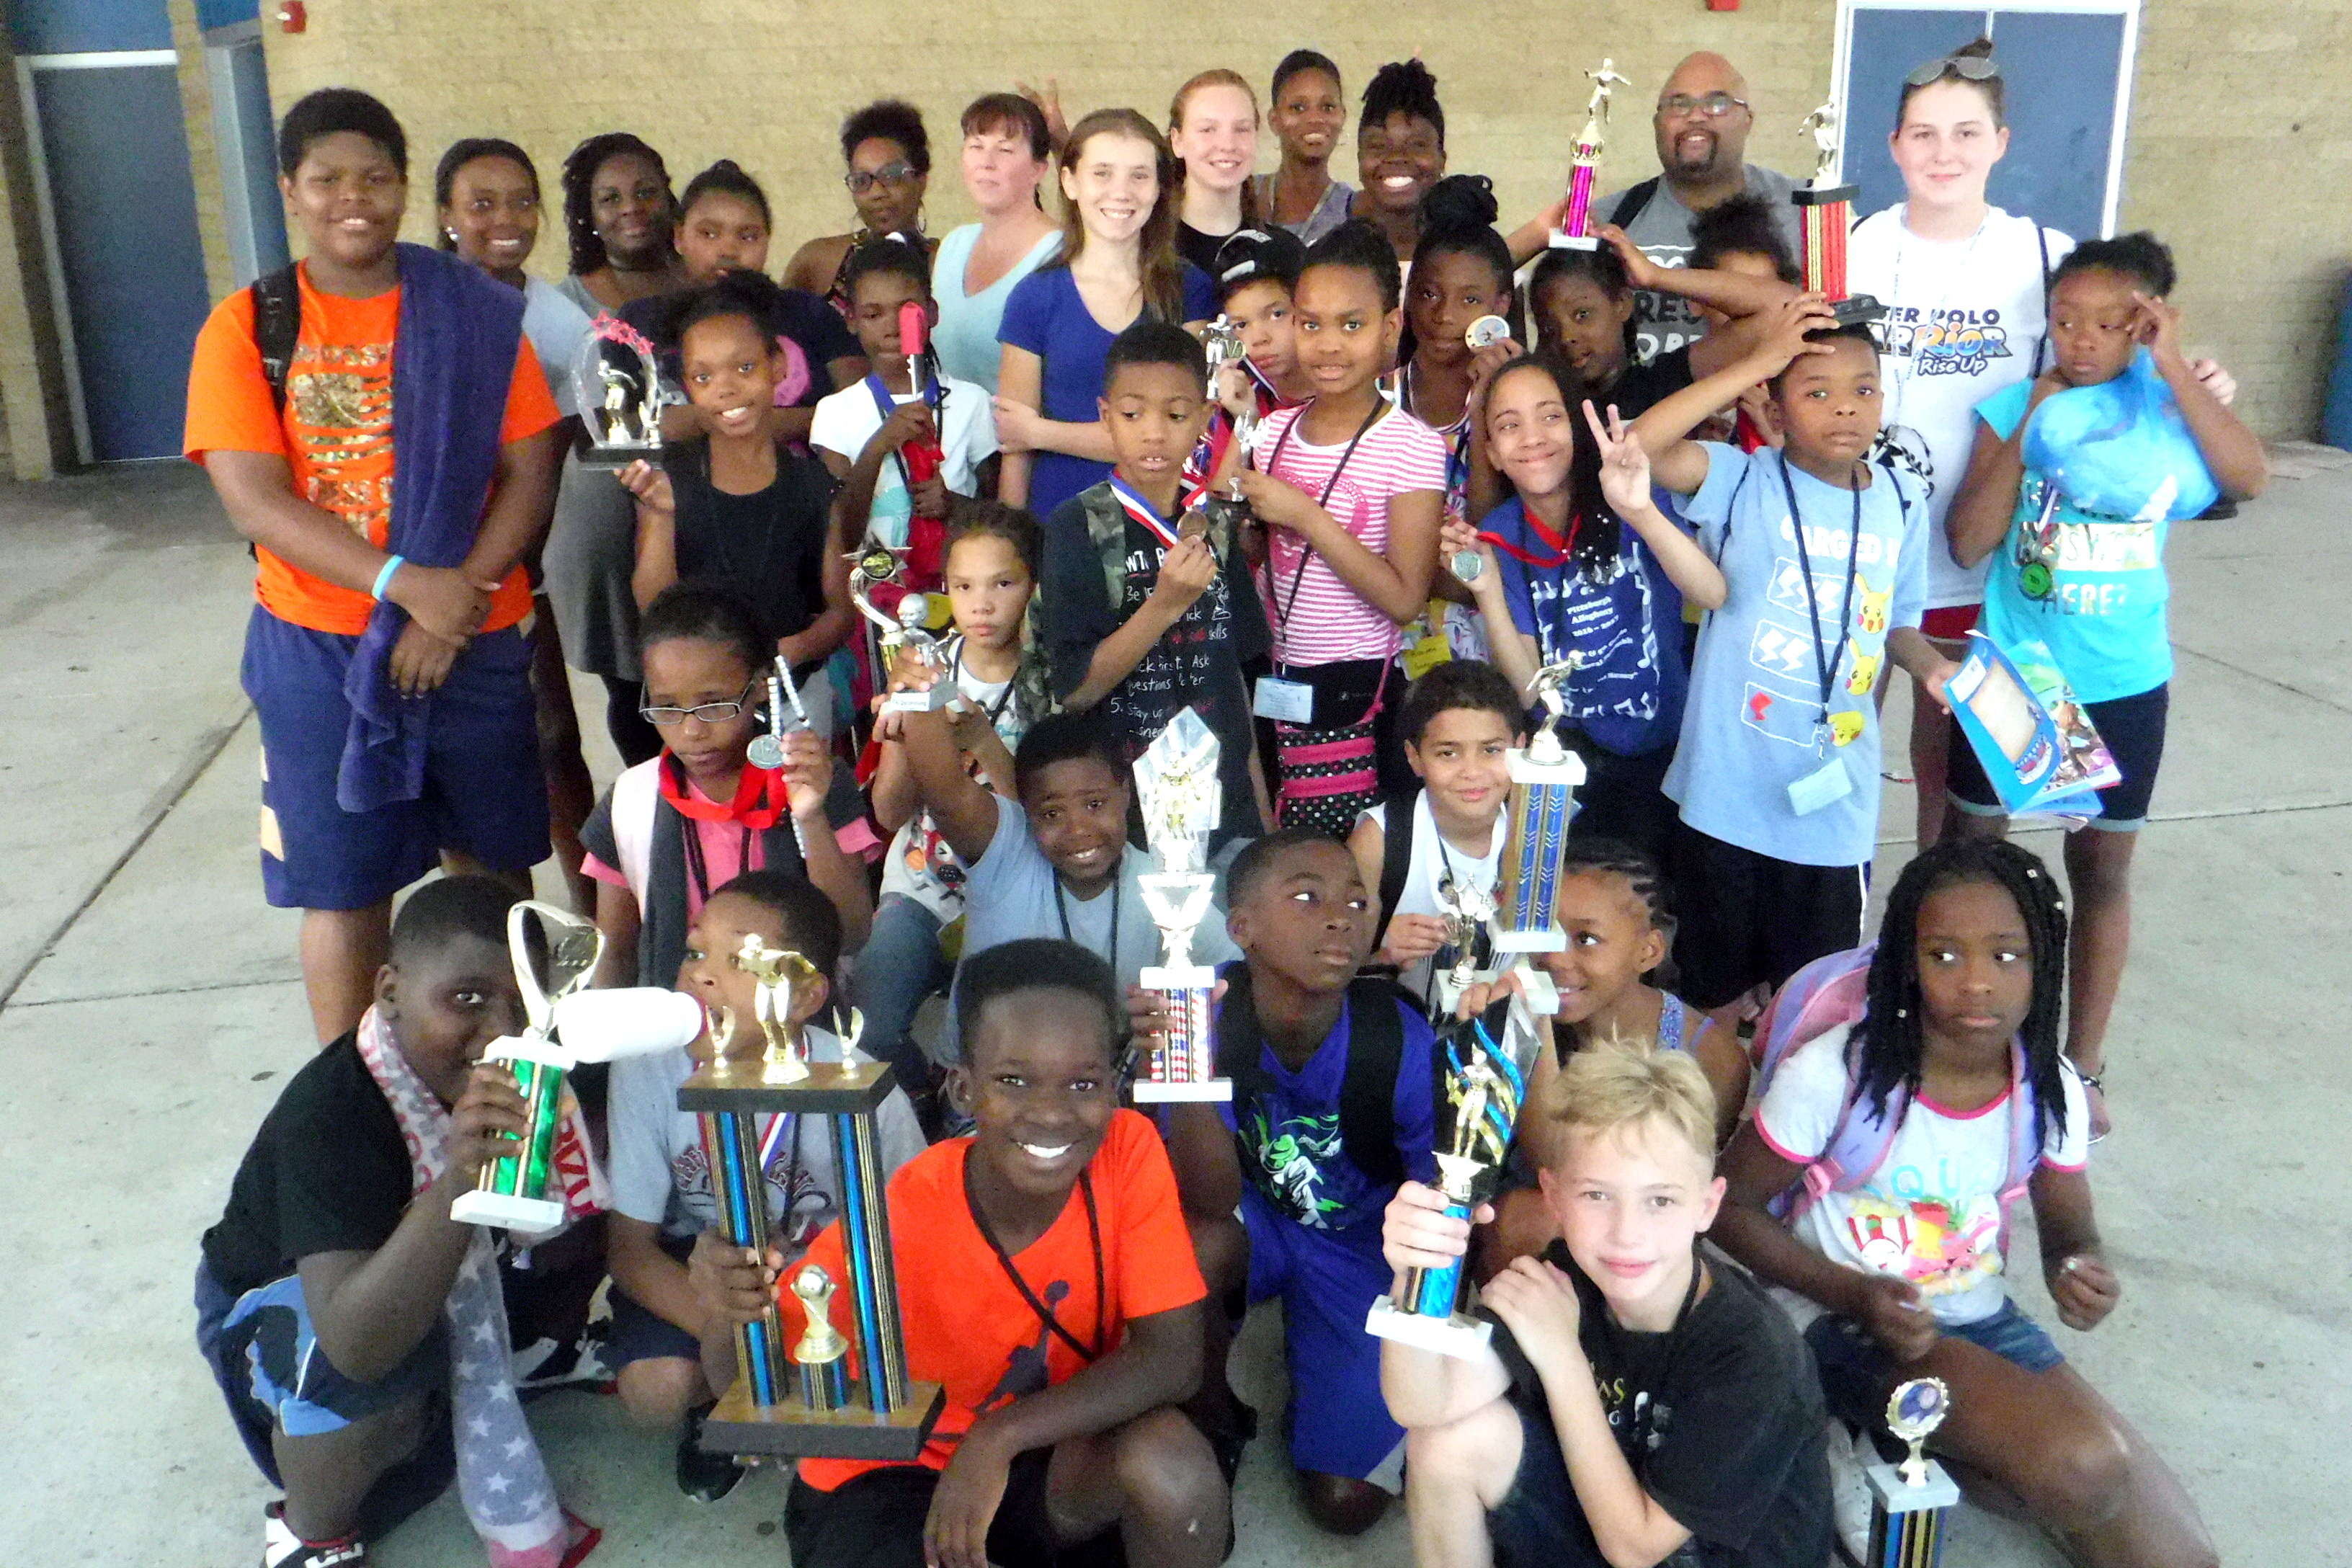 Swimmers with trophies at Swim & Water Polo Camp